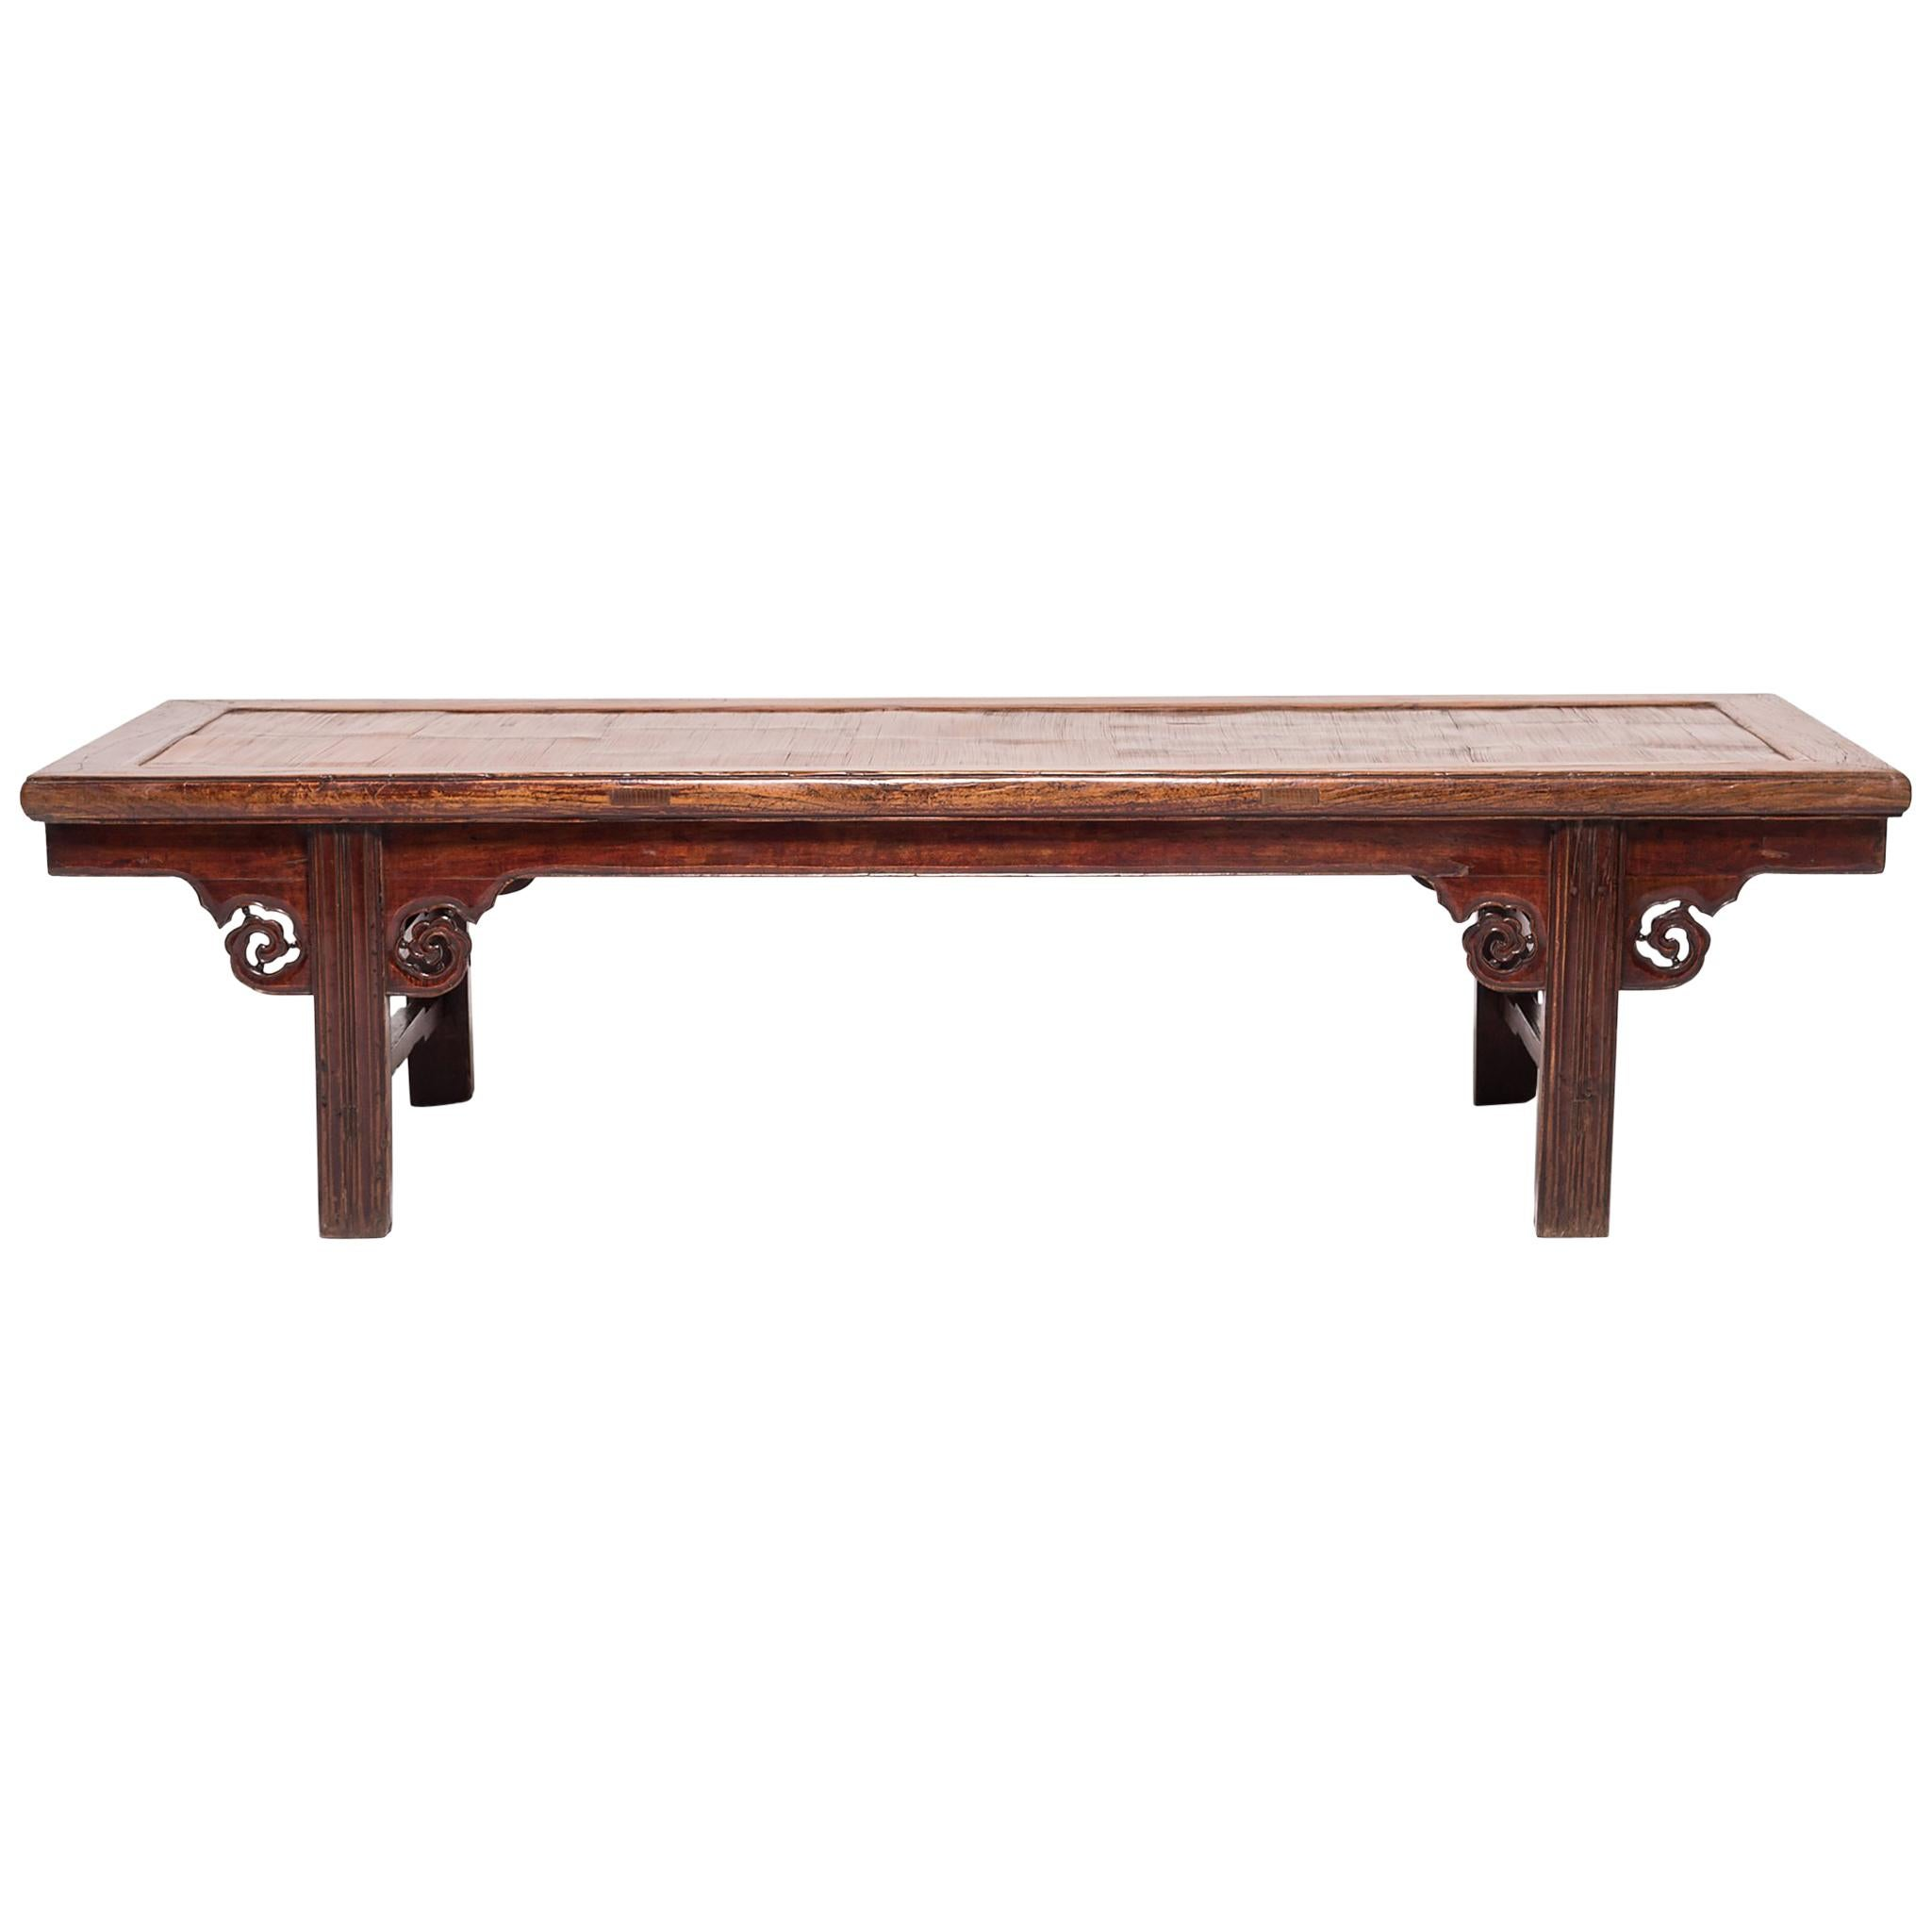 19th Century Chinese Low Kang Table